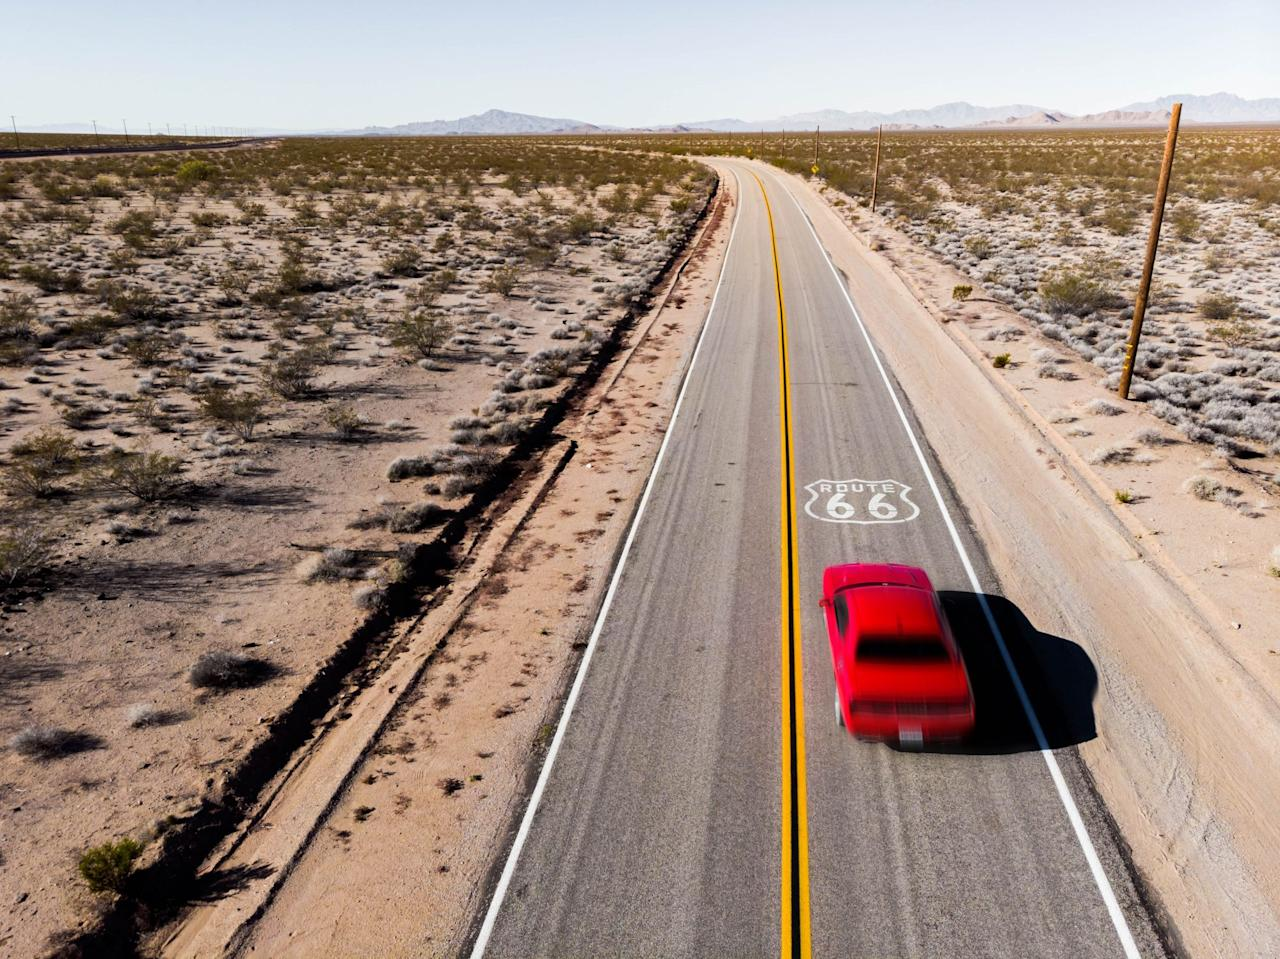 """<p>Even if you don't know where to find Route 66 (yet), you have heard of Route 66. The highway connected Chicago, Illinois, to Santa Monica, California, and <a href=""""https://ncptt.nps.gov/rt66/history-and-significance-of-us-route-66/"""">revolutionized the way people traveled across America</a>. It was the first all-weather highway that reduced the cross-country trip from Chicago to L.A. by a whopping 200 miles! People who could afford a car would want to make this trip because it signified freedom and thus, the realization of the American dream. You probably won't be able to travel the entire highway as it was during its heyday from 1926 to 1985, but enough of it still exists that you can get a taste of what makes it so special.</p>"""